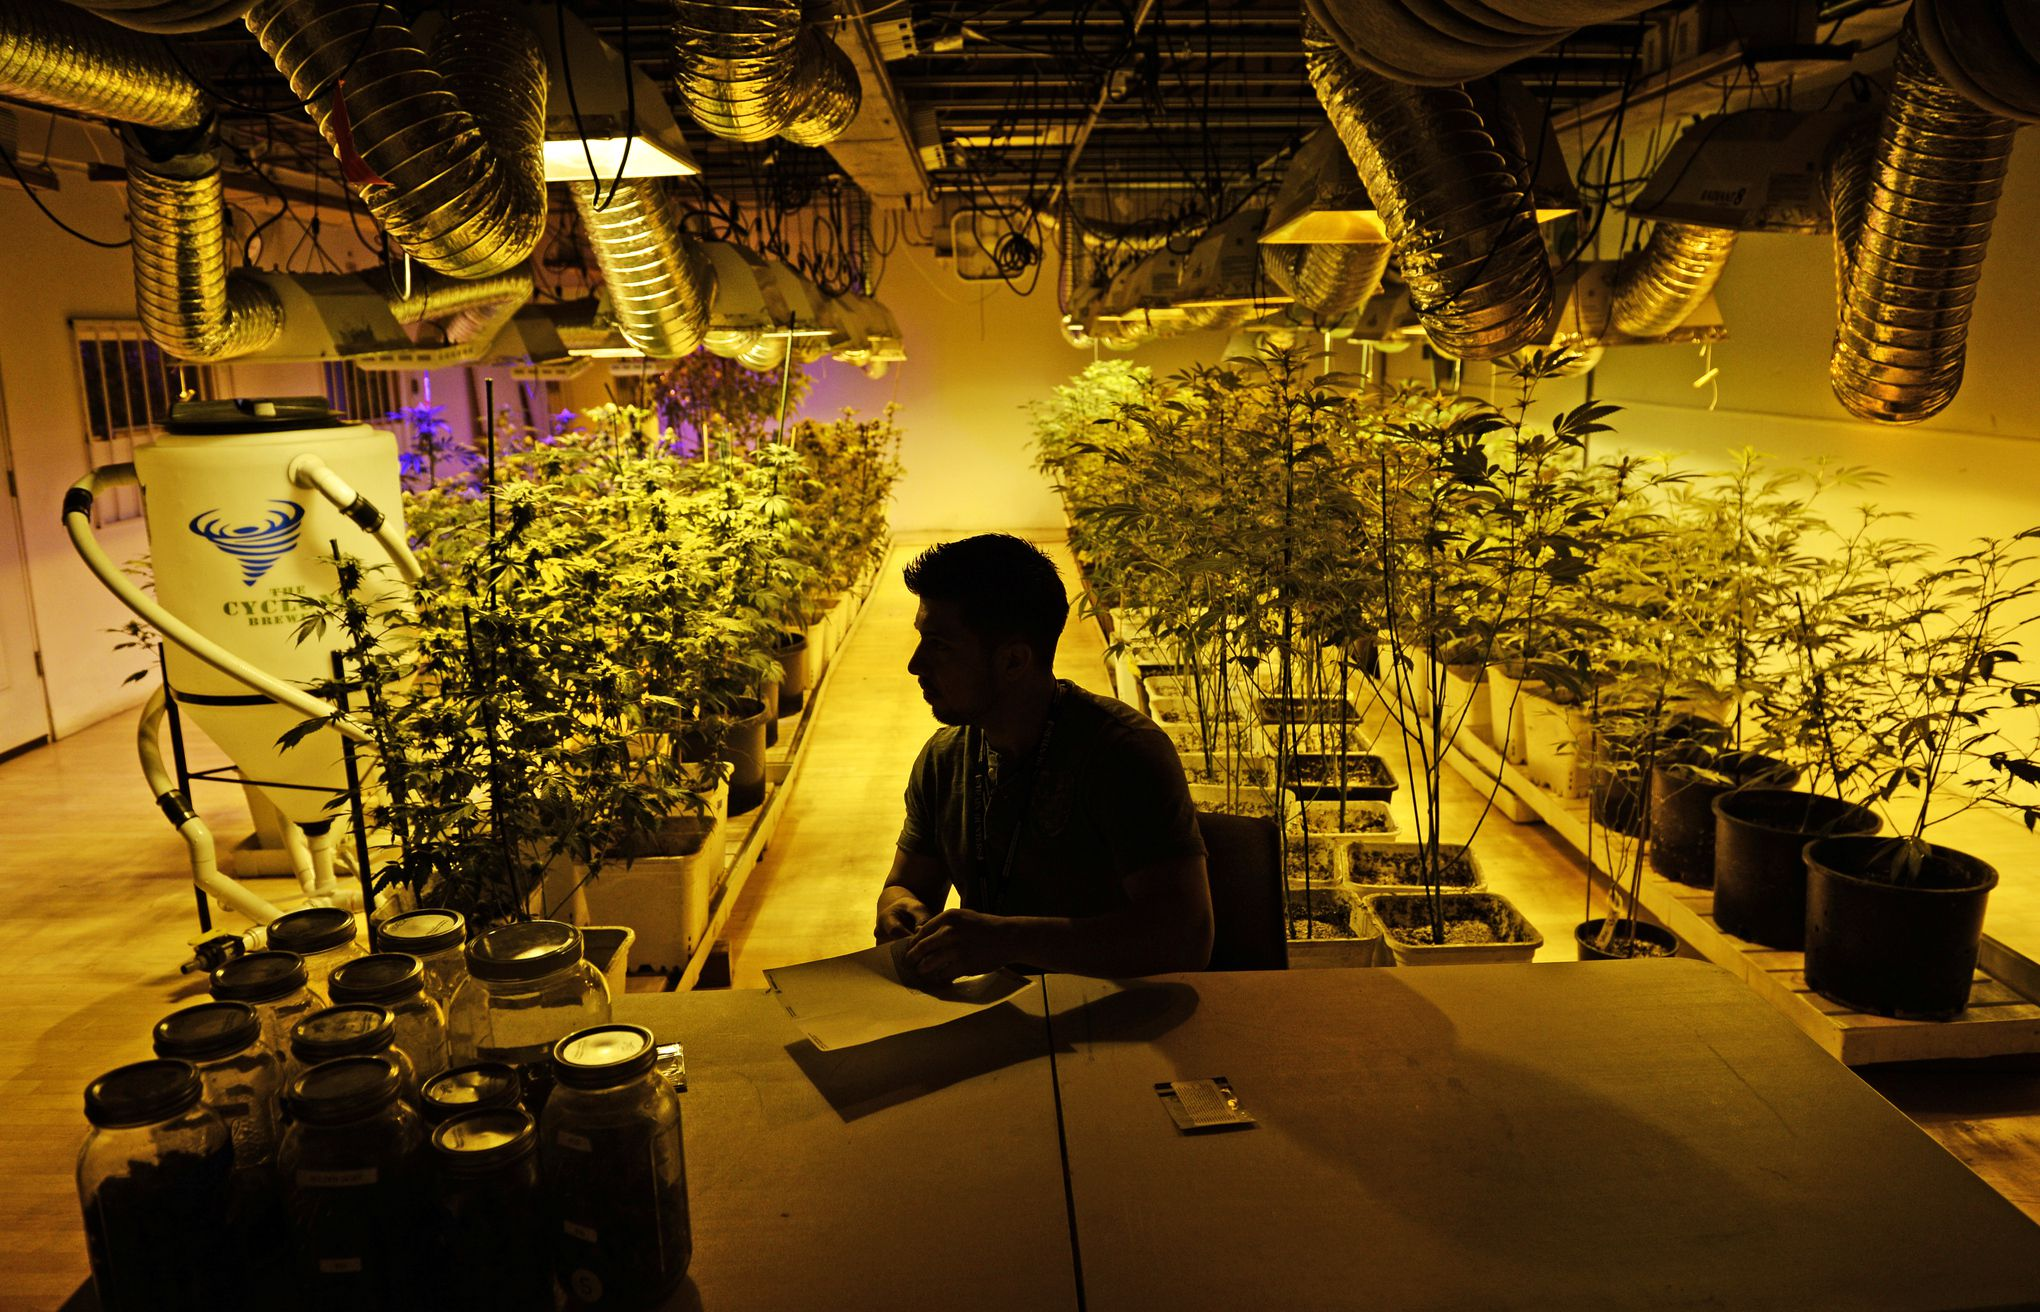 s marijuana legalization votes explained vox a marijuana business manager prepares for the first day of recreational s